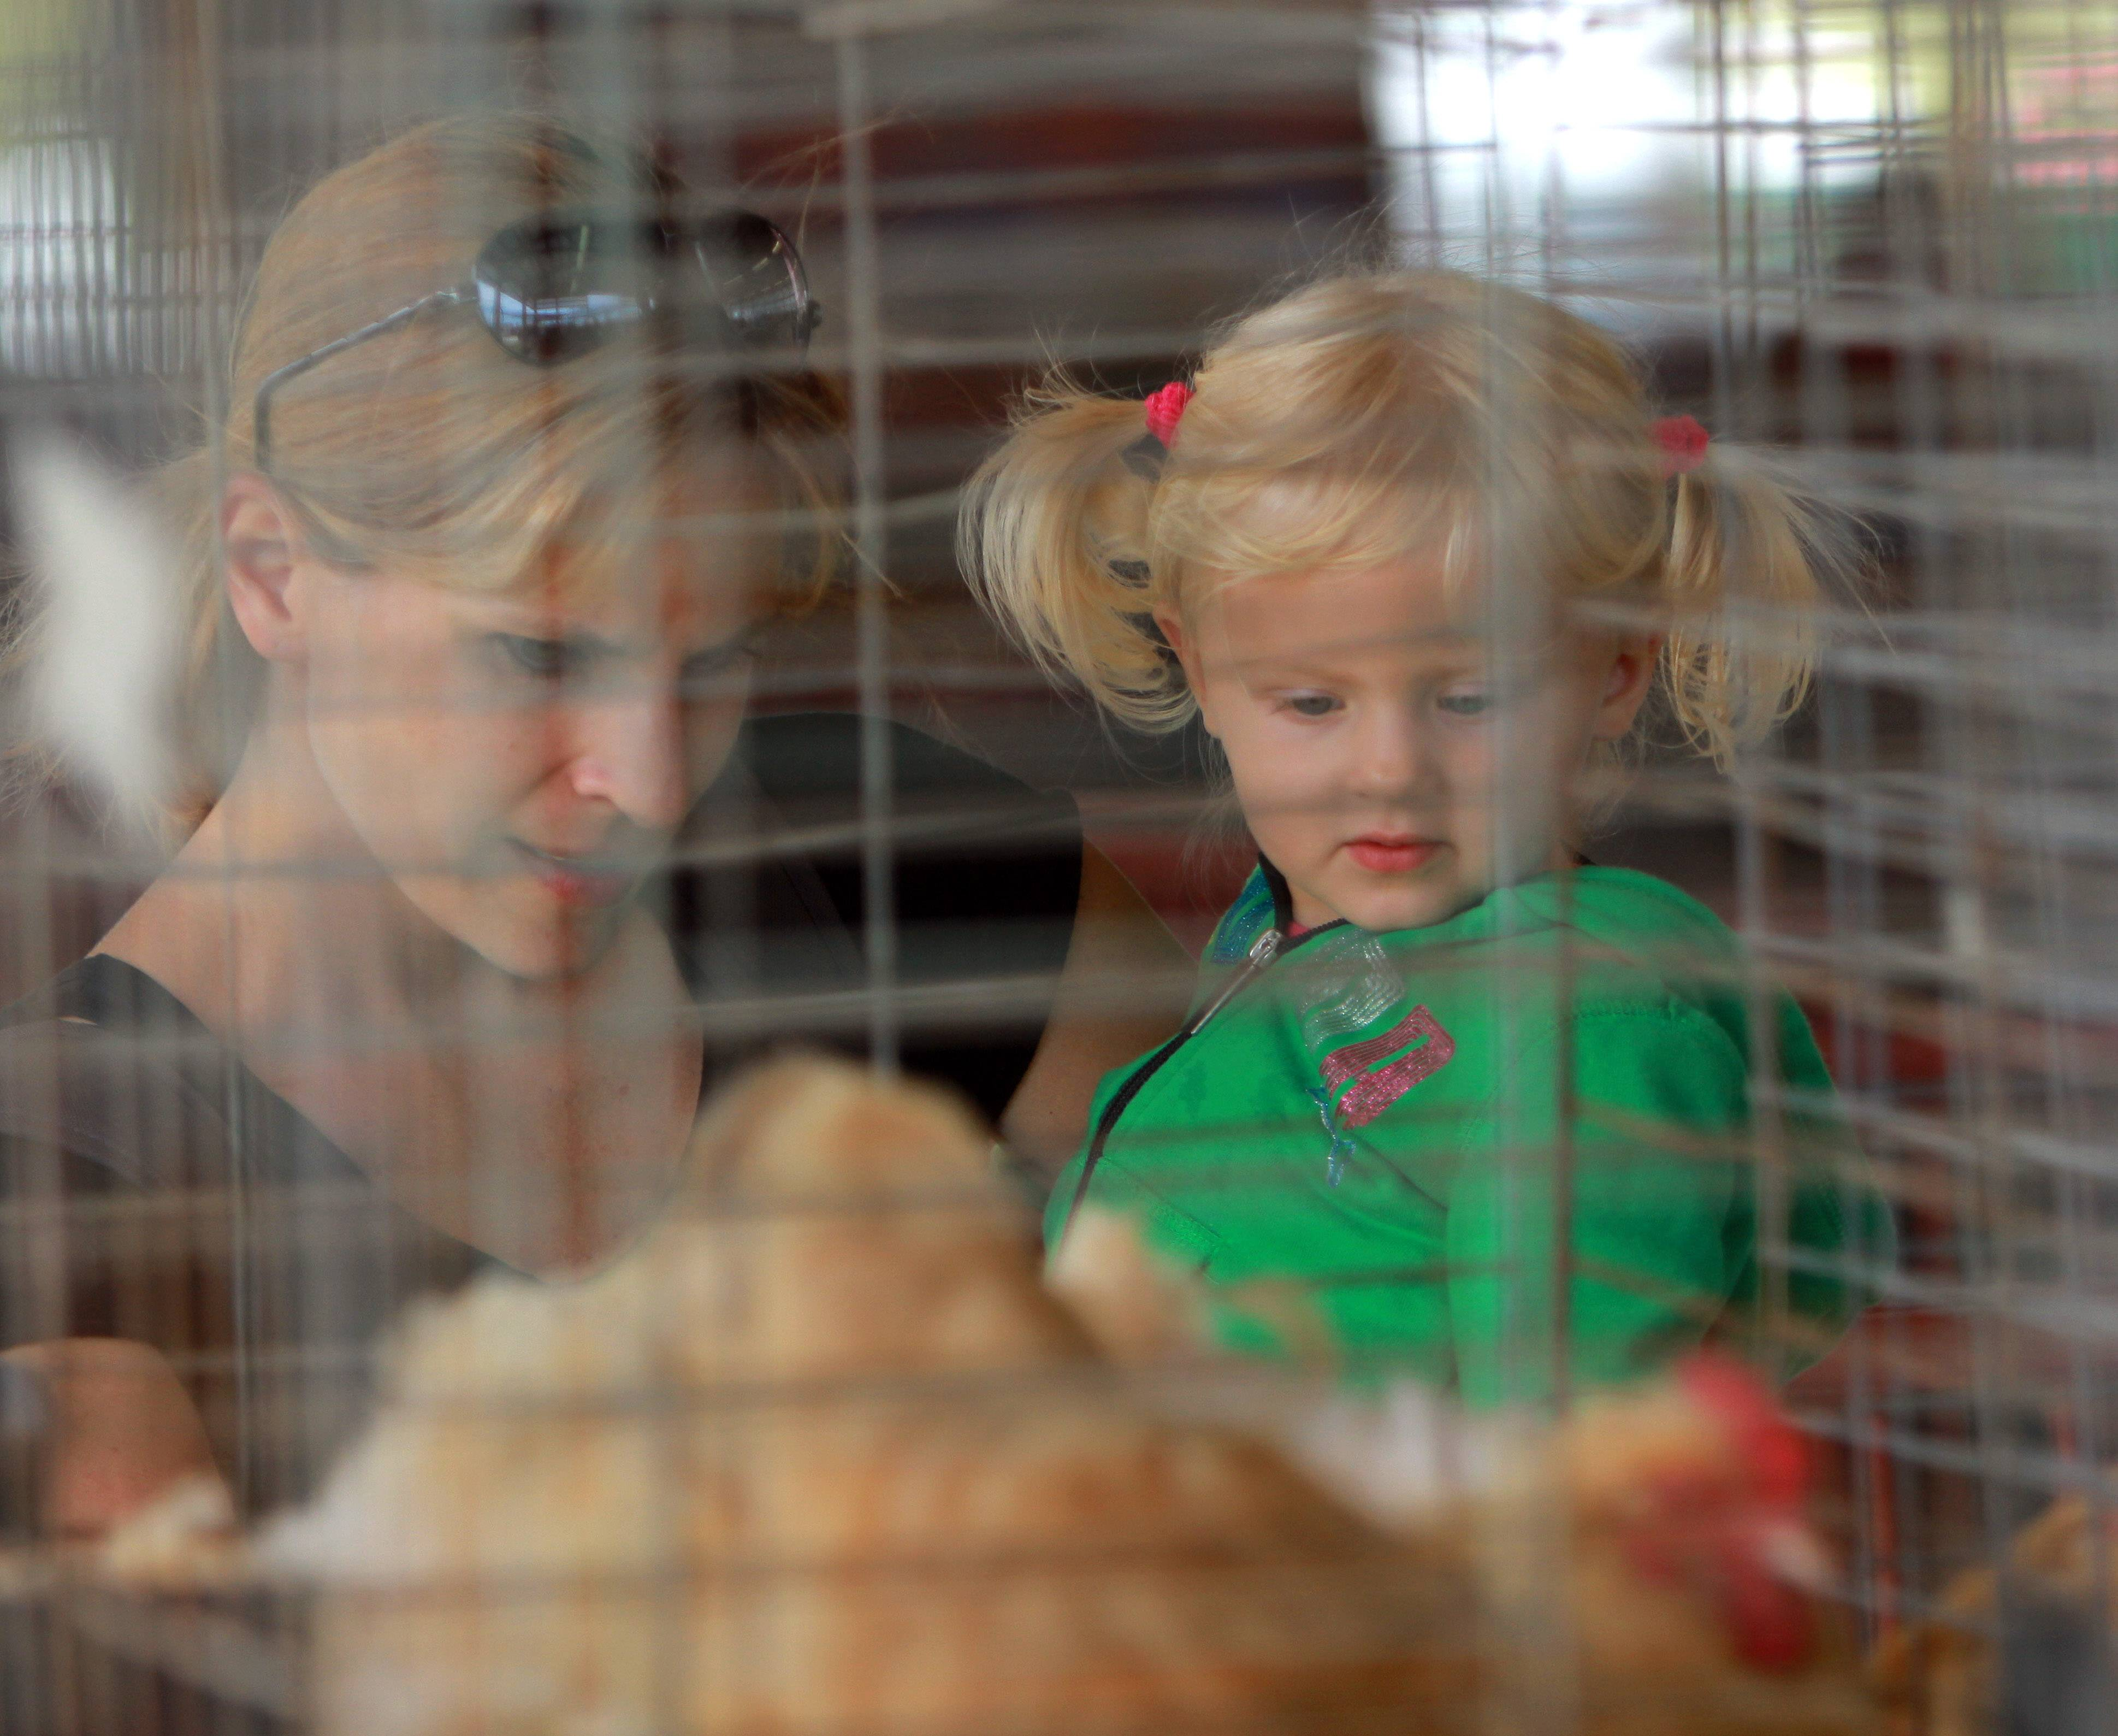 Nicki Dufalt, left, of Grayslake and her two-year-old daughter Kenzie look at chickens.